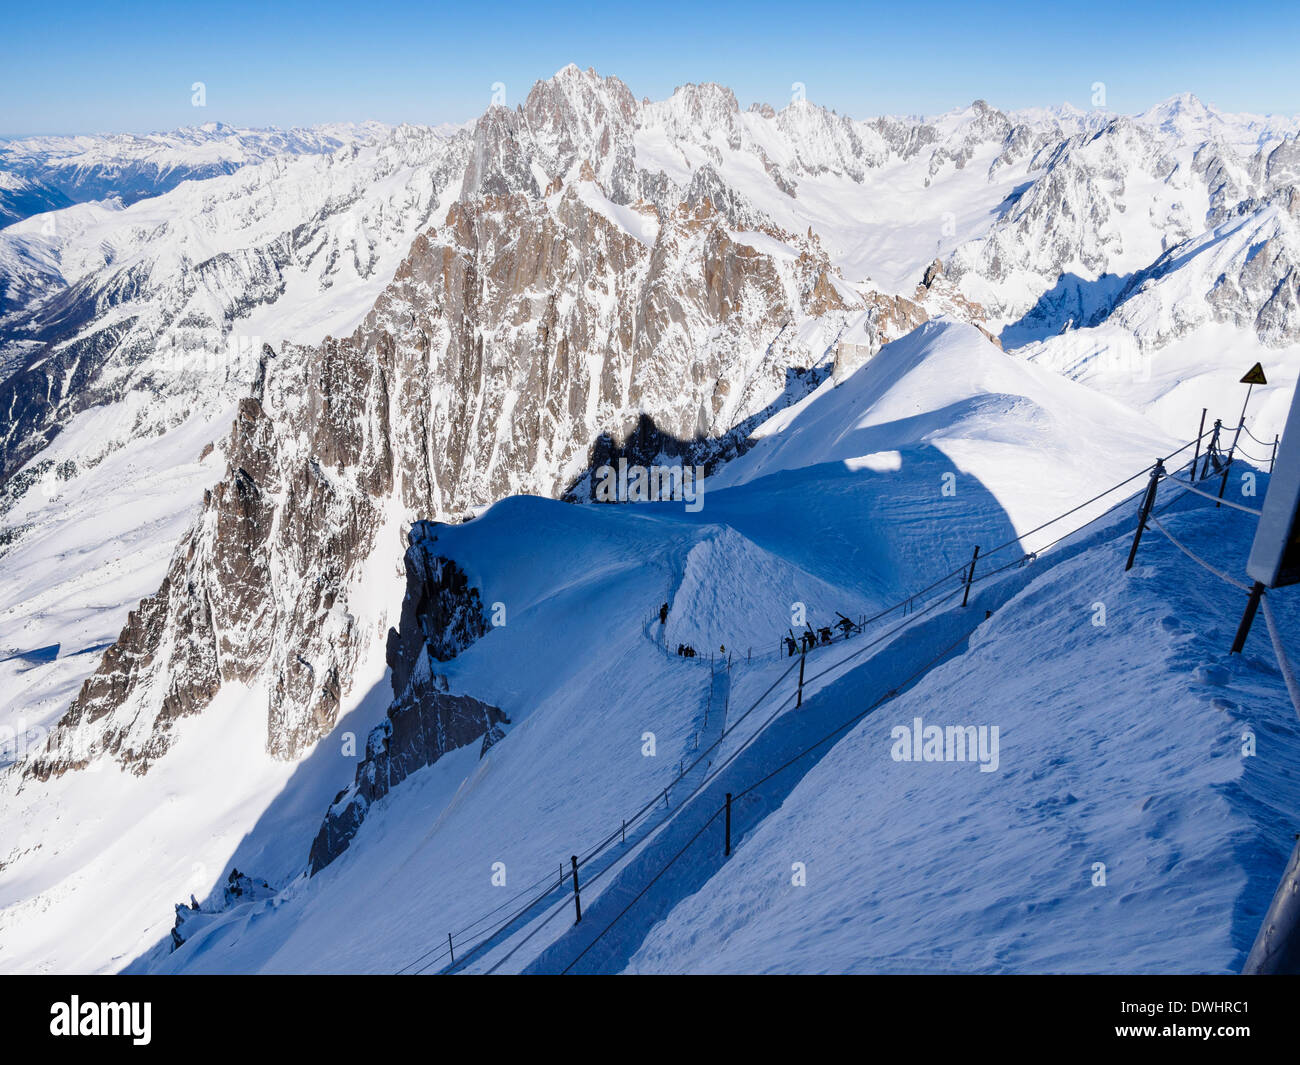 Roped path route to Vallee Blanche with skiers descending arete on Aiguille du Midi Chamonix Haute Savoie Rhone-Alpes France - Stock Image